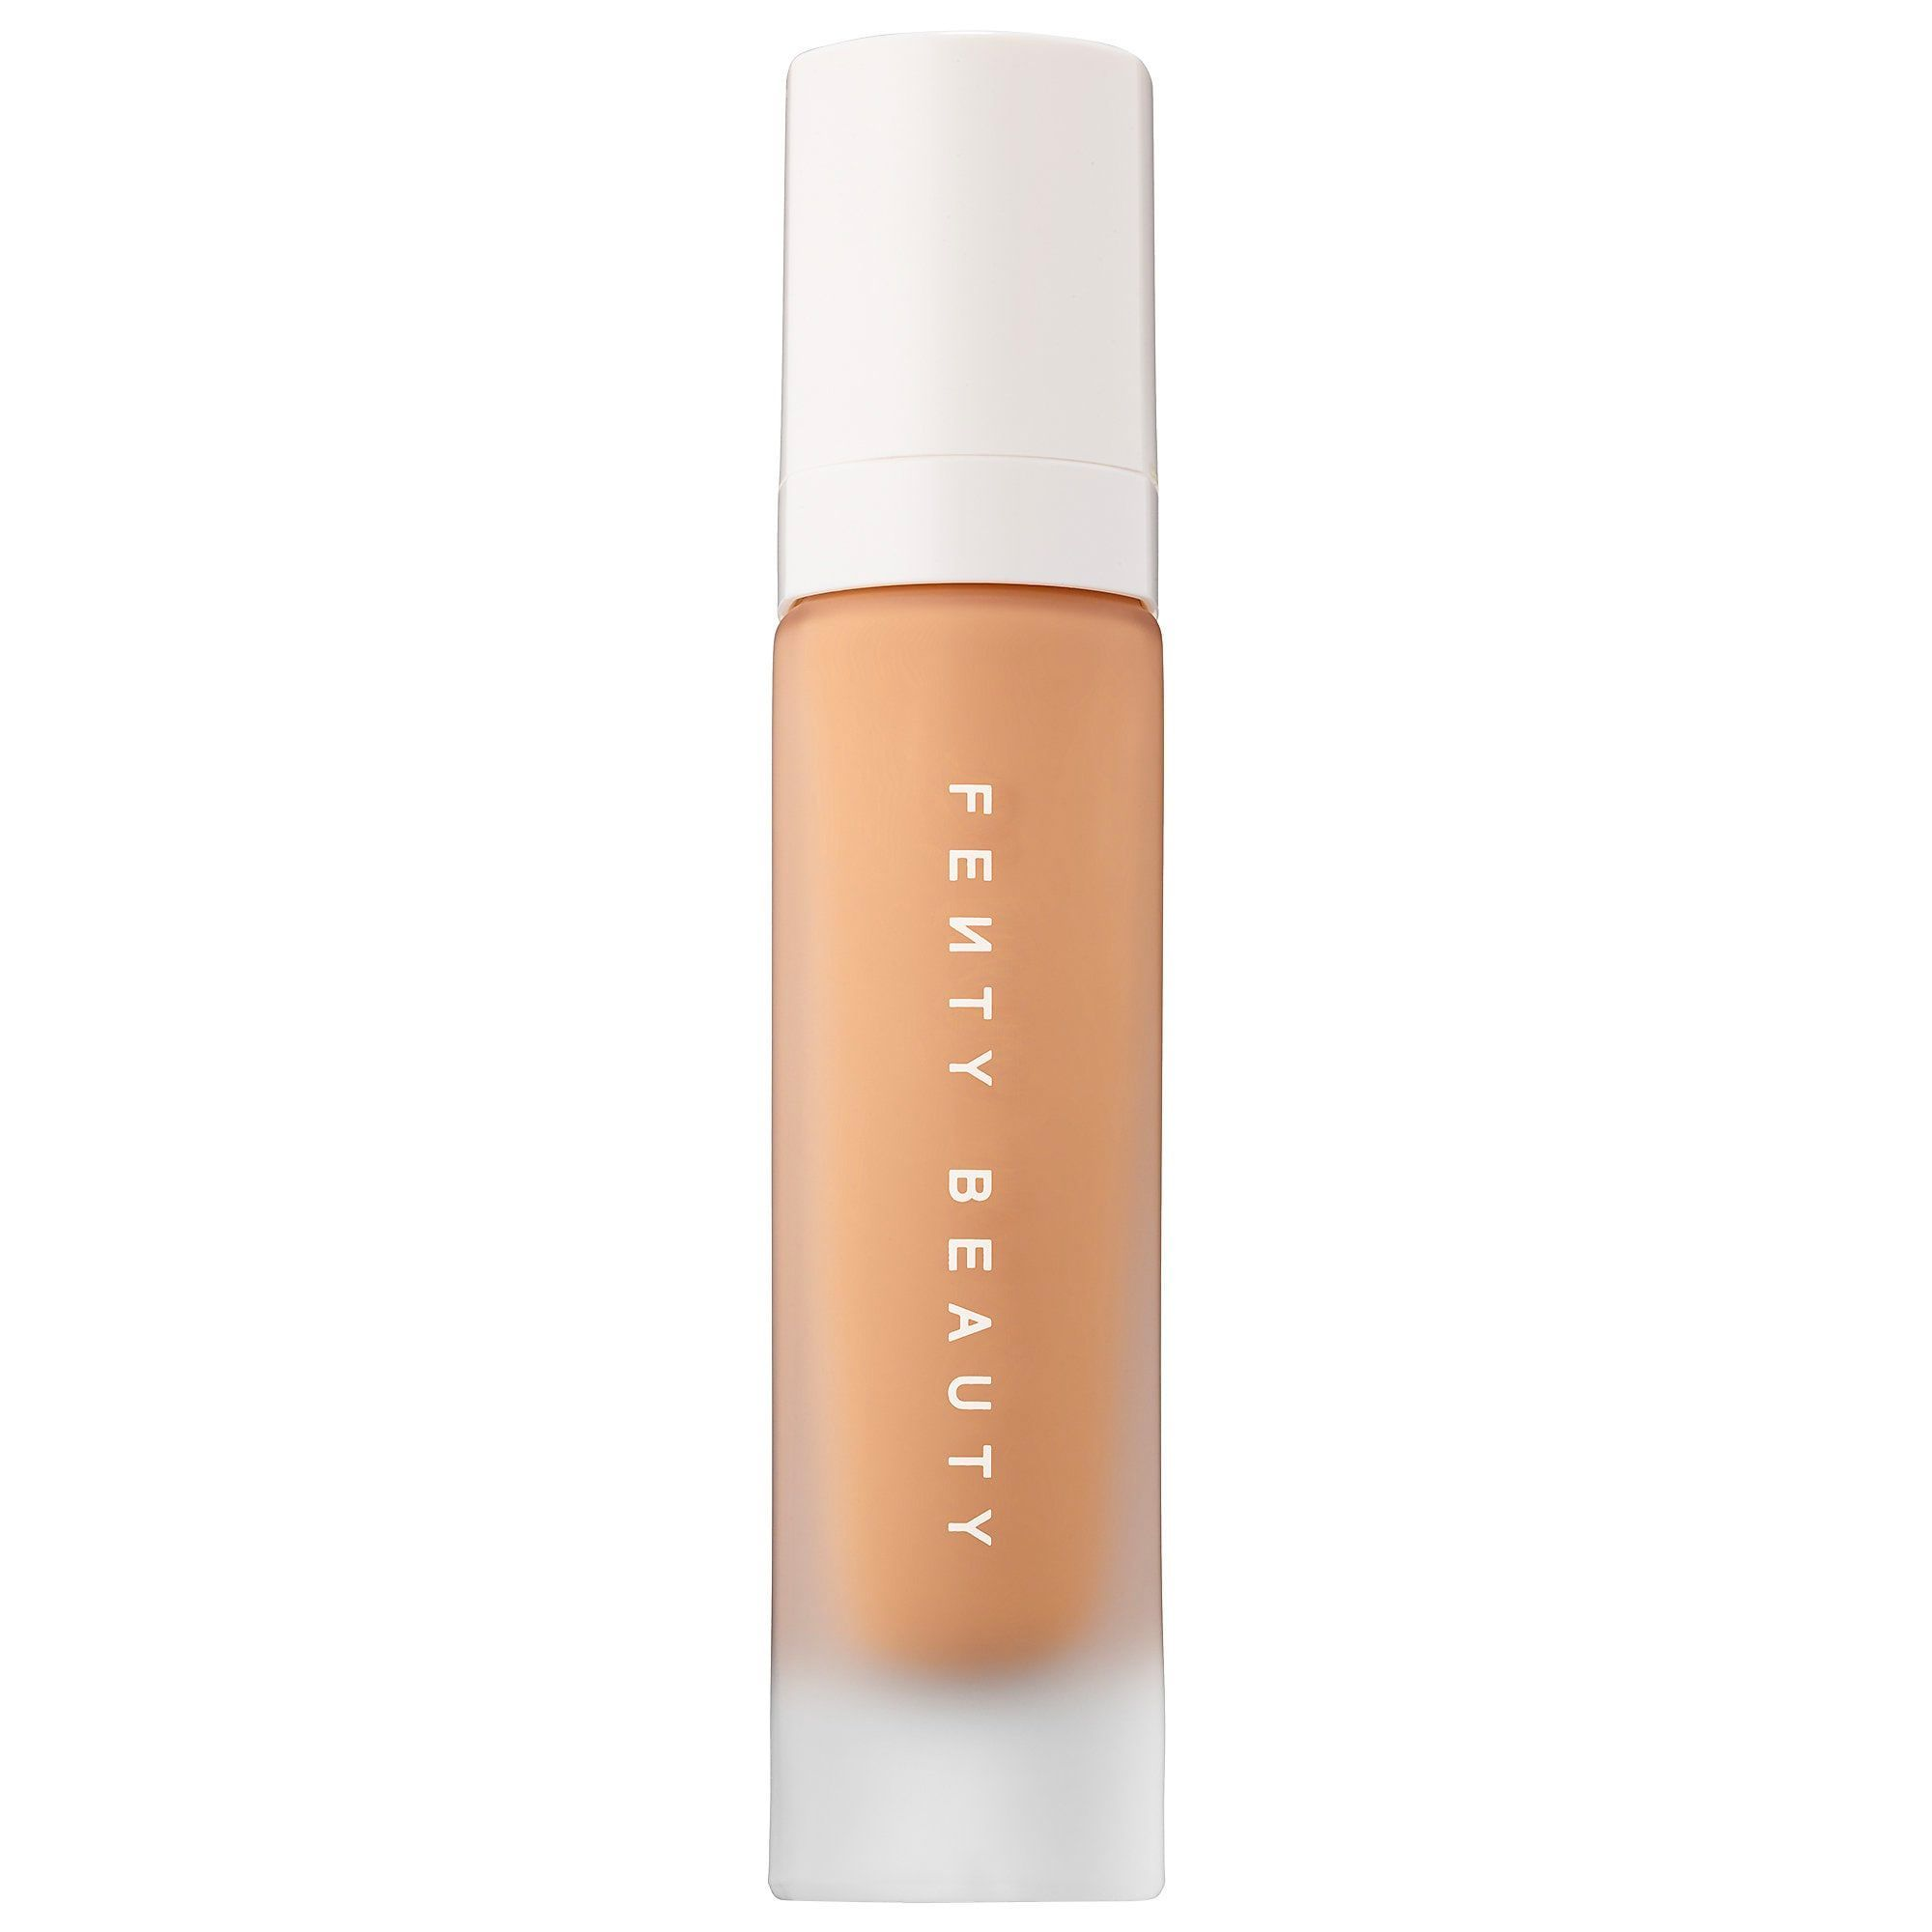 For Ultra Matte Skin Pro Filt'r Soft Matte Longwear Foundation Fenty Beauty $35.00 SHOP NOW If it's good enough for Rih, it's good enough for me. This super matte formula not only has a wide range of shades, but is full coverage and stays put all day without developing a film of shine.